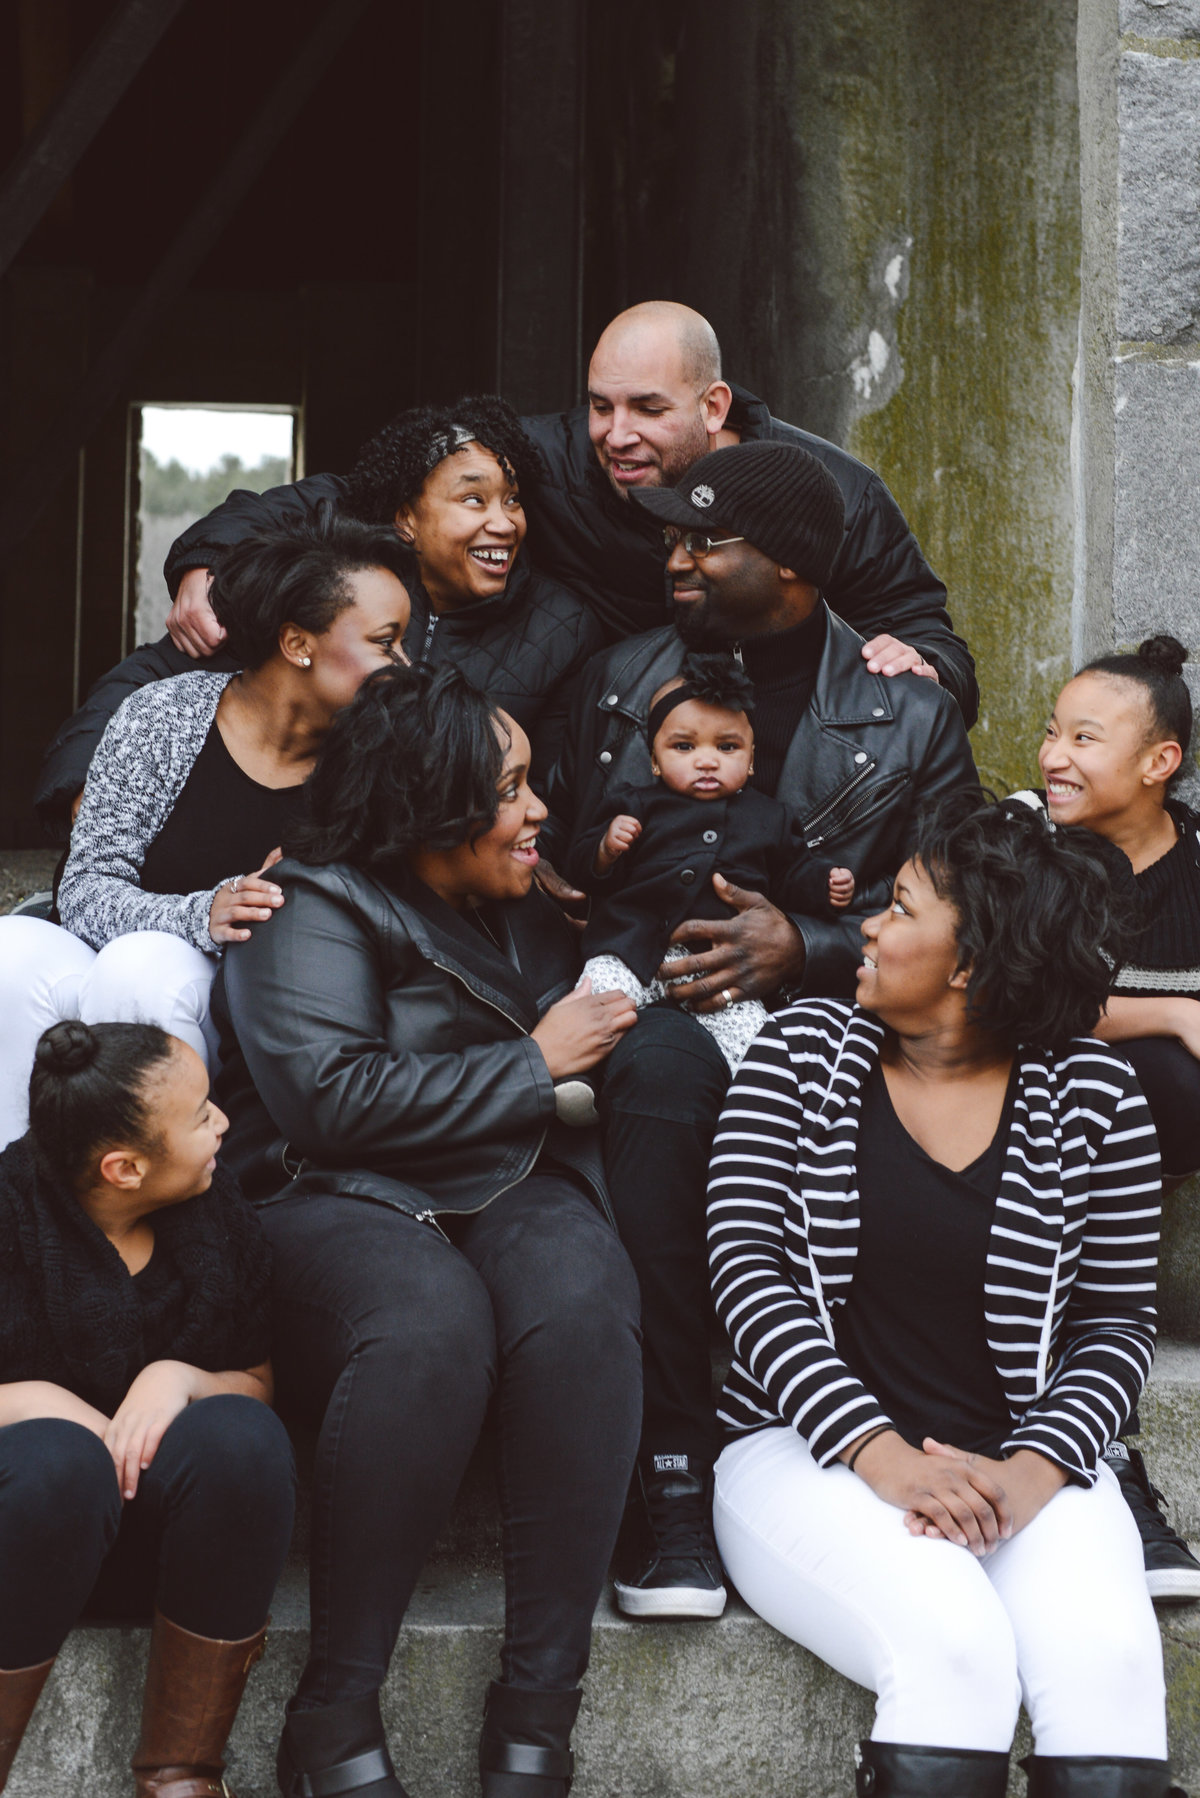 Mullings Family Photos 11-27-16 -- Bright Lights Imagery-71